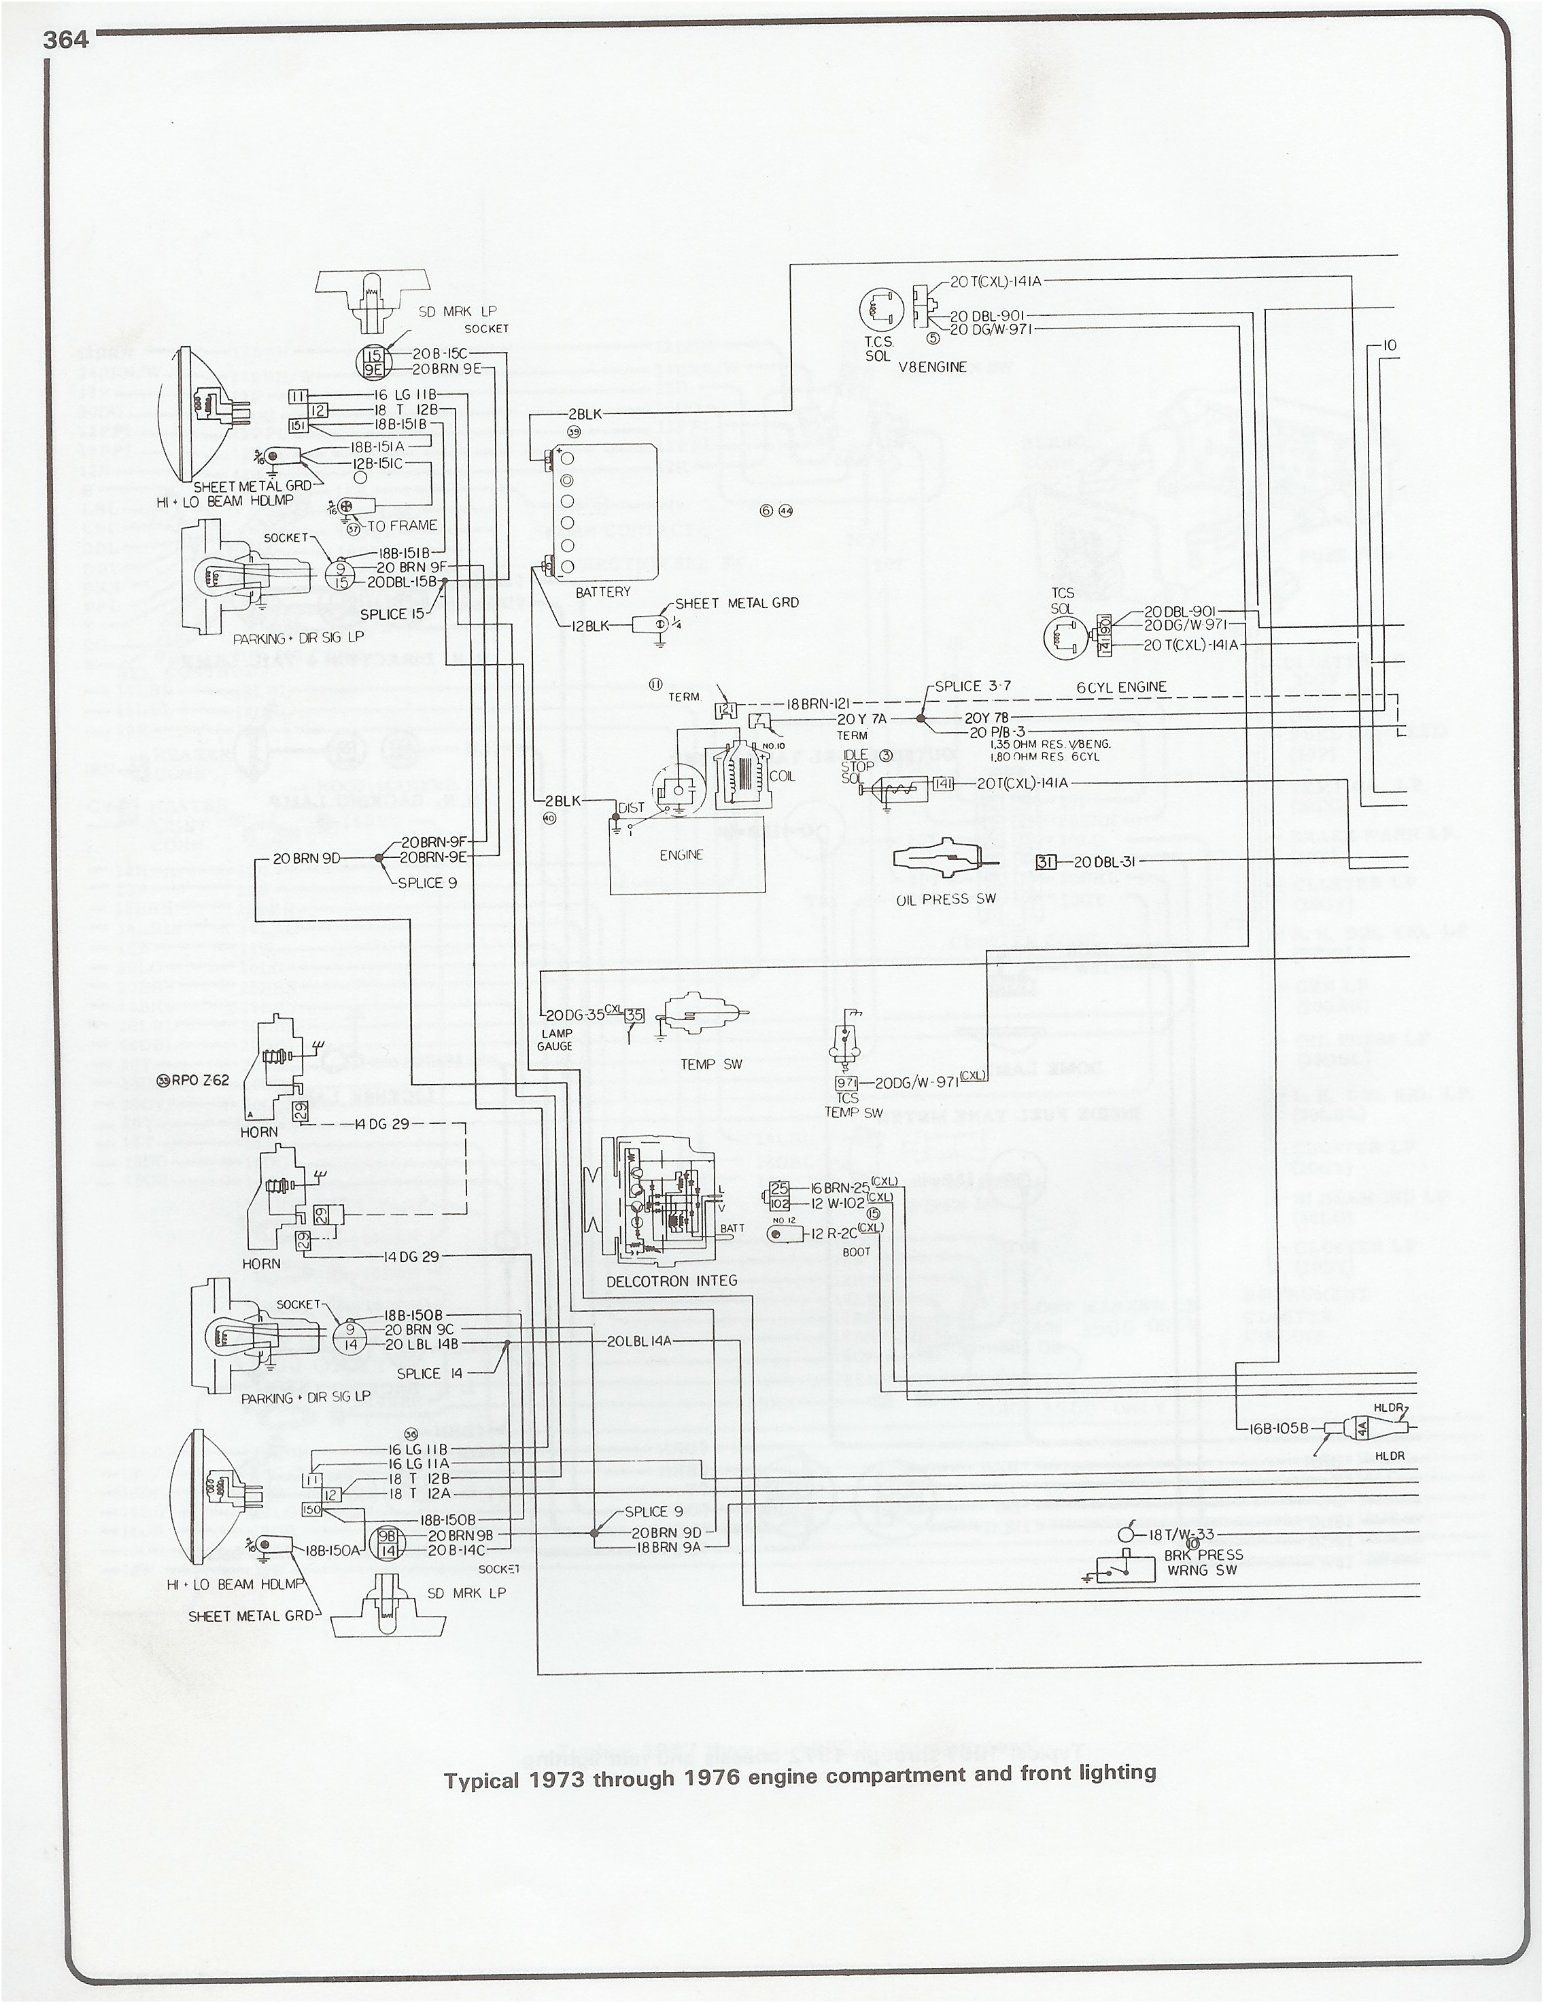 1973 mercury 1500 thunderbolt ignition switch box schematic